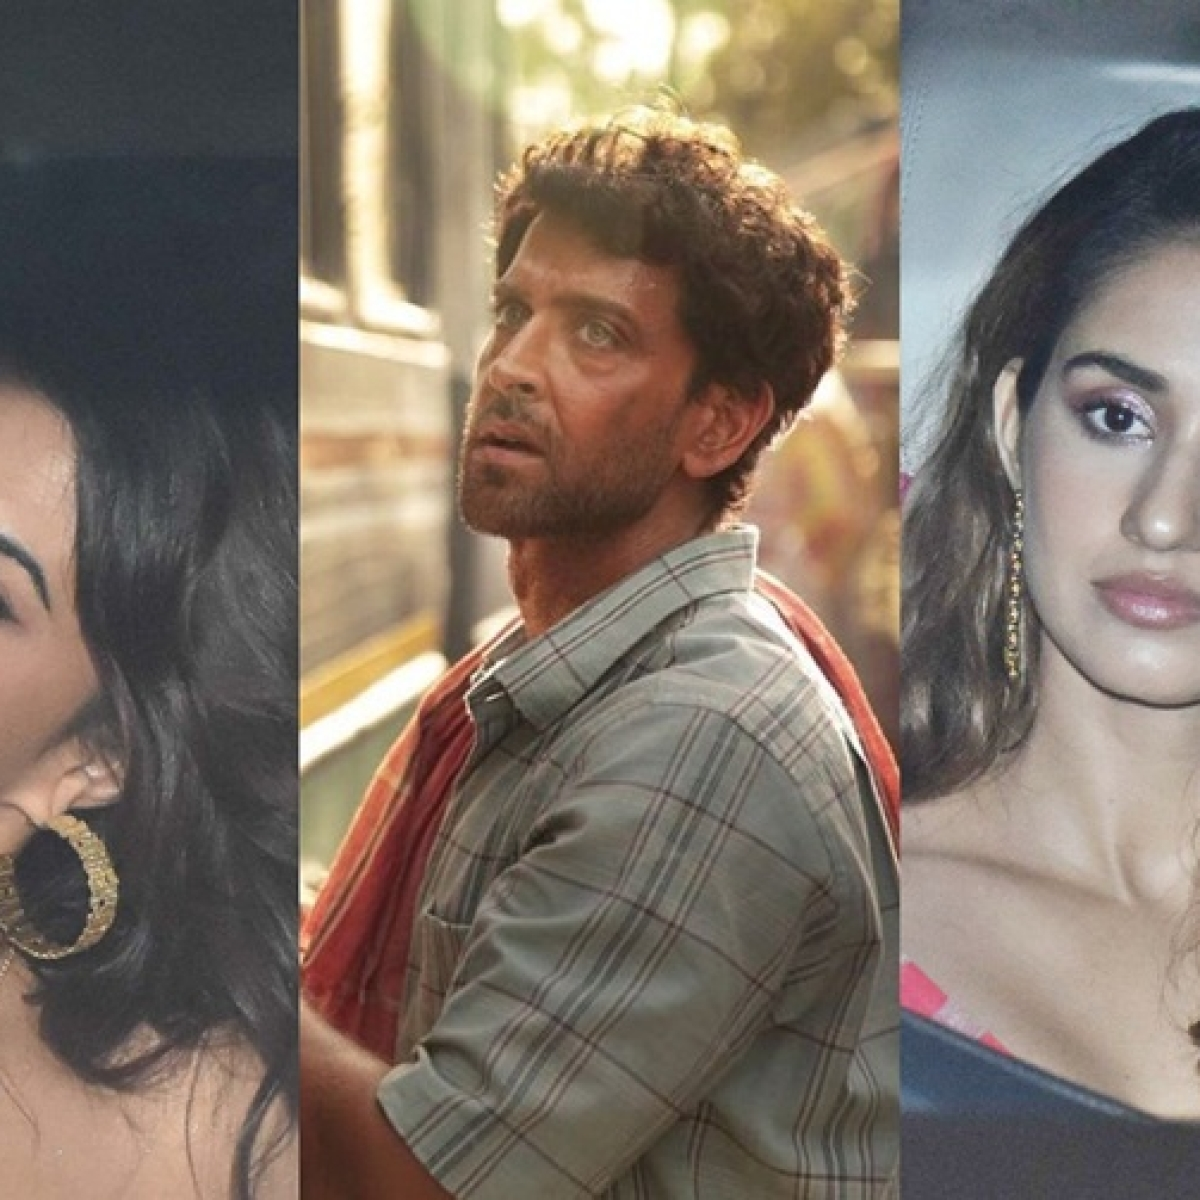 Super 30 Screening: Disha Patani, Jacqueline Fernandez and others in attendance